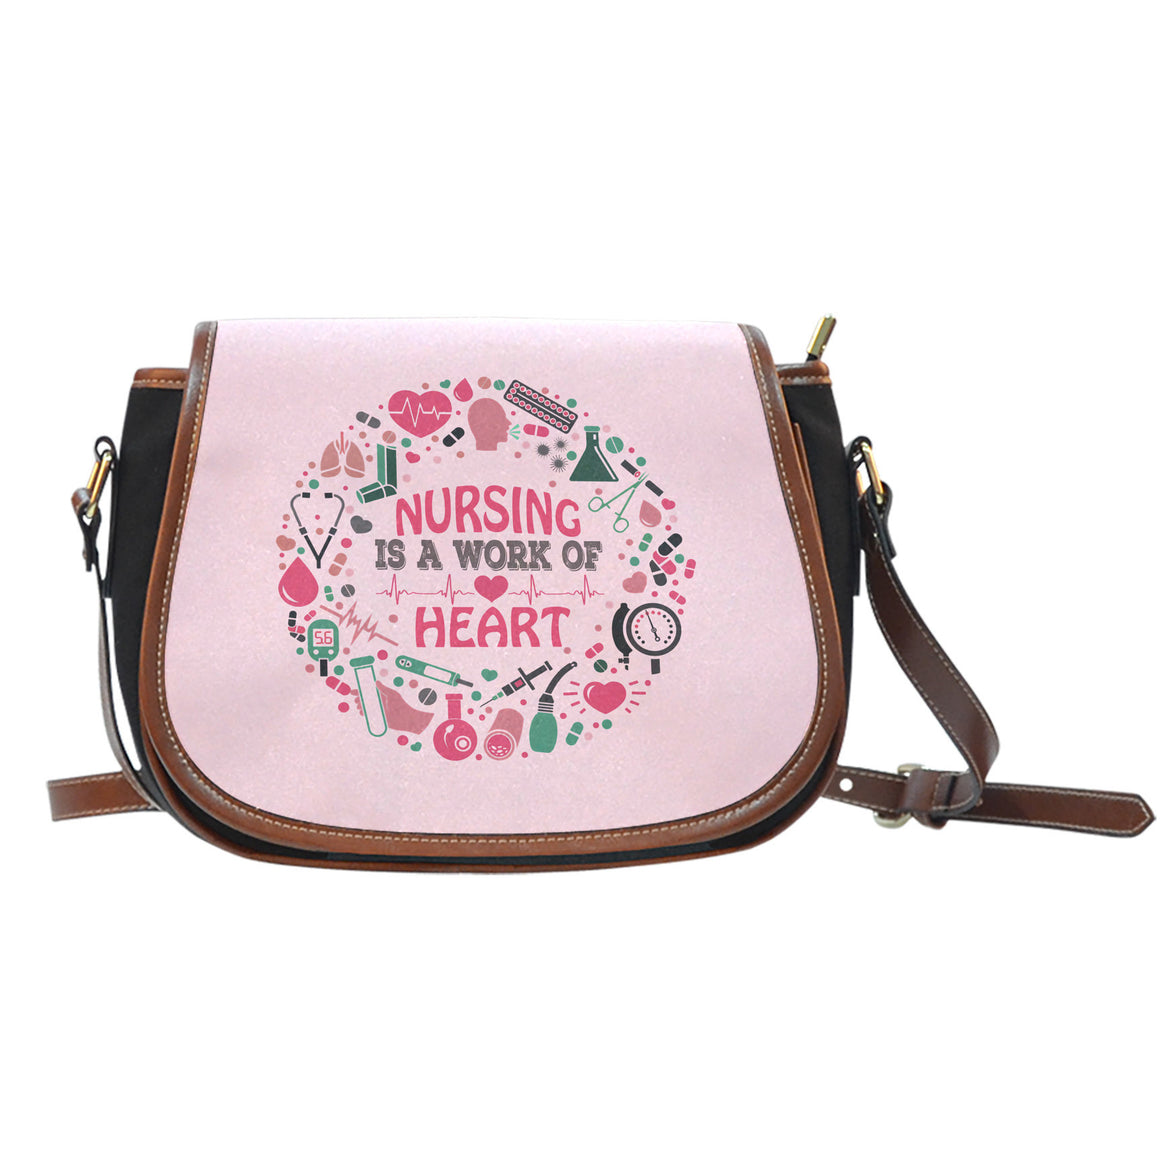 Nursing Is a Work of Heart Saddle Bag